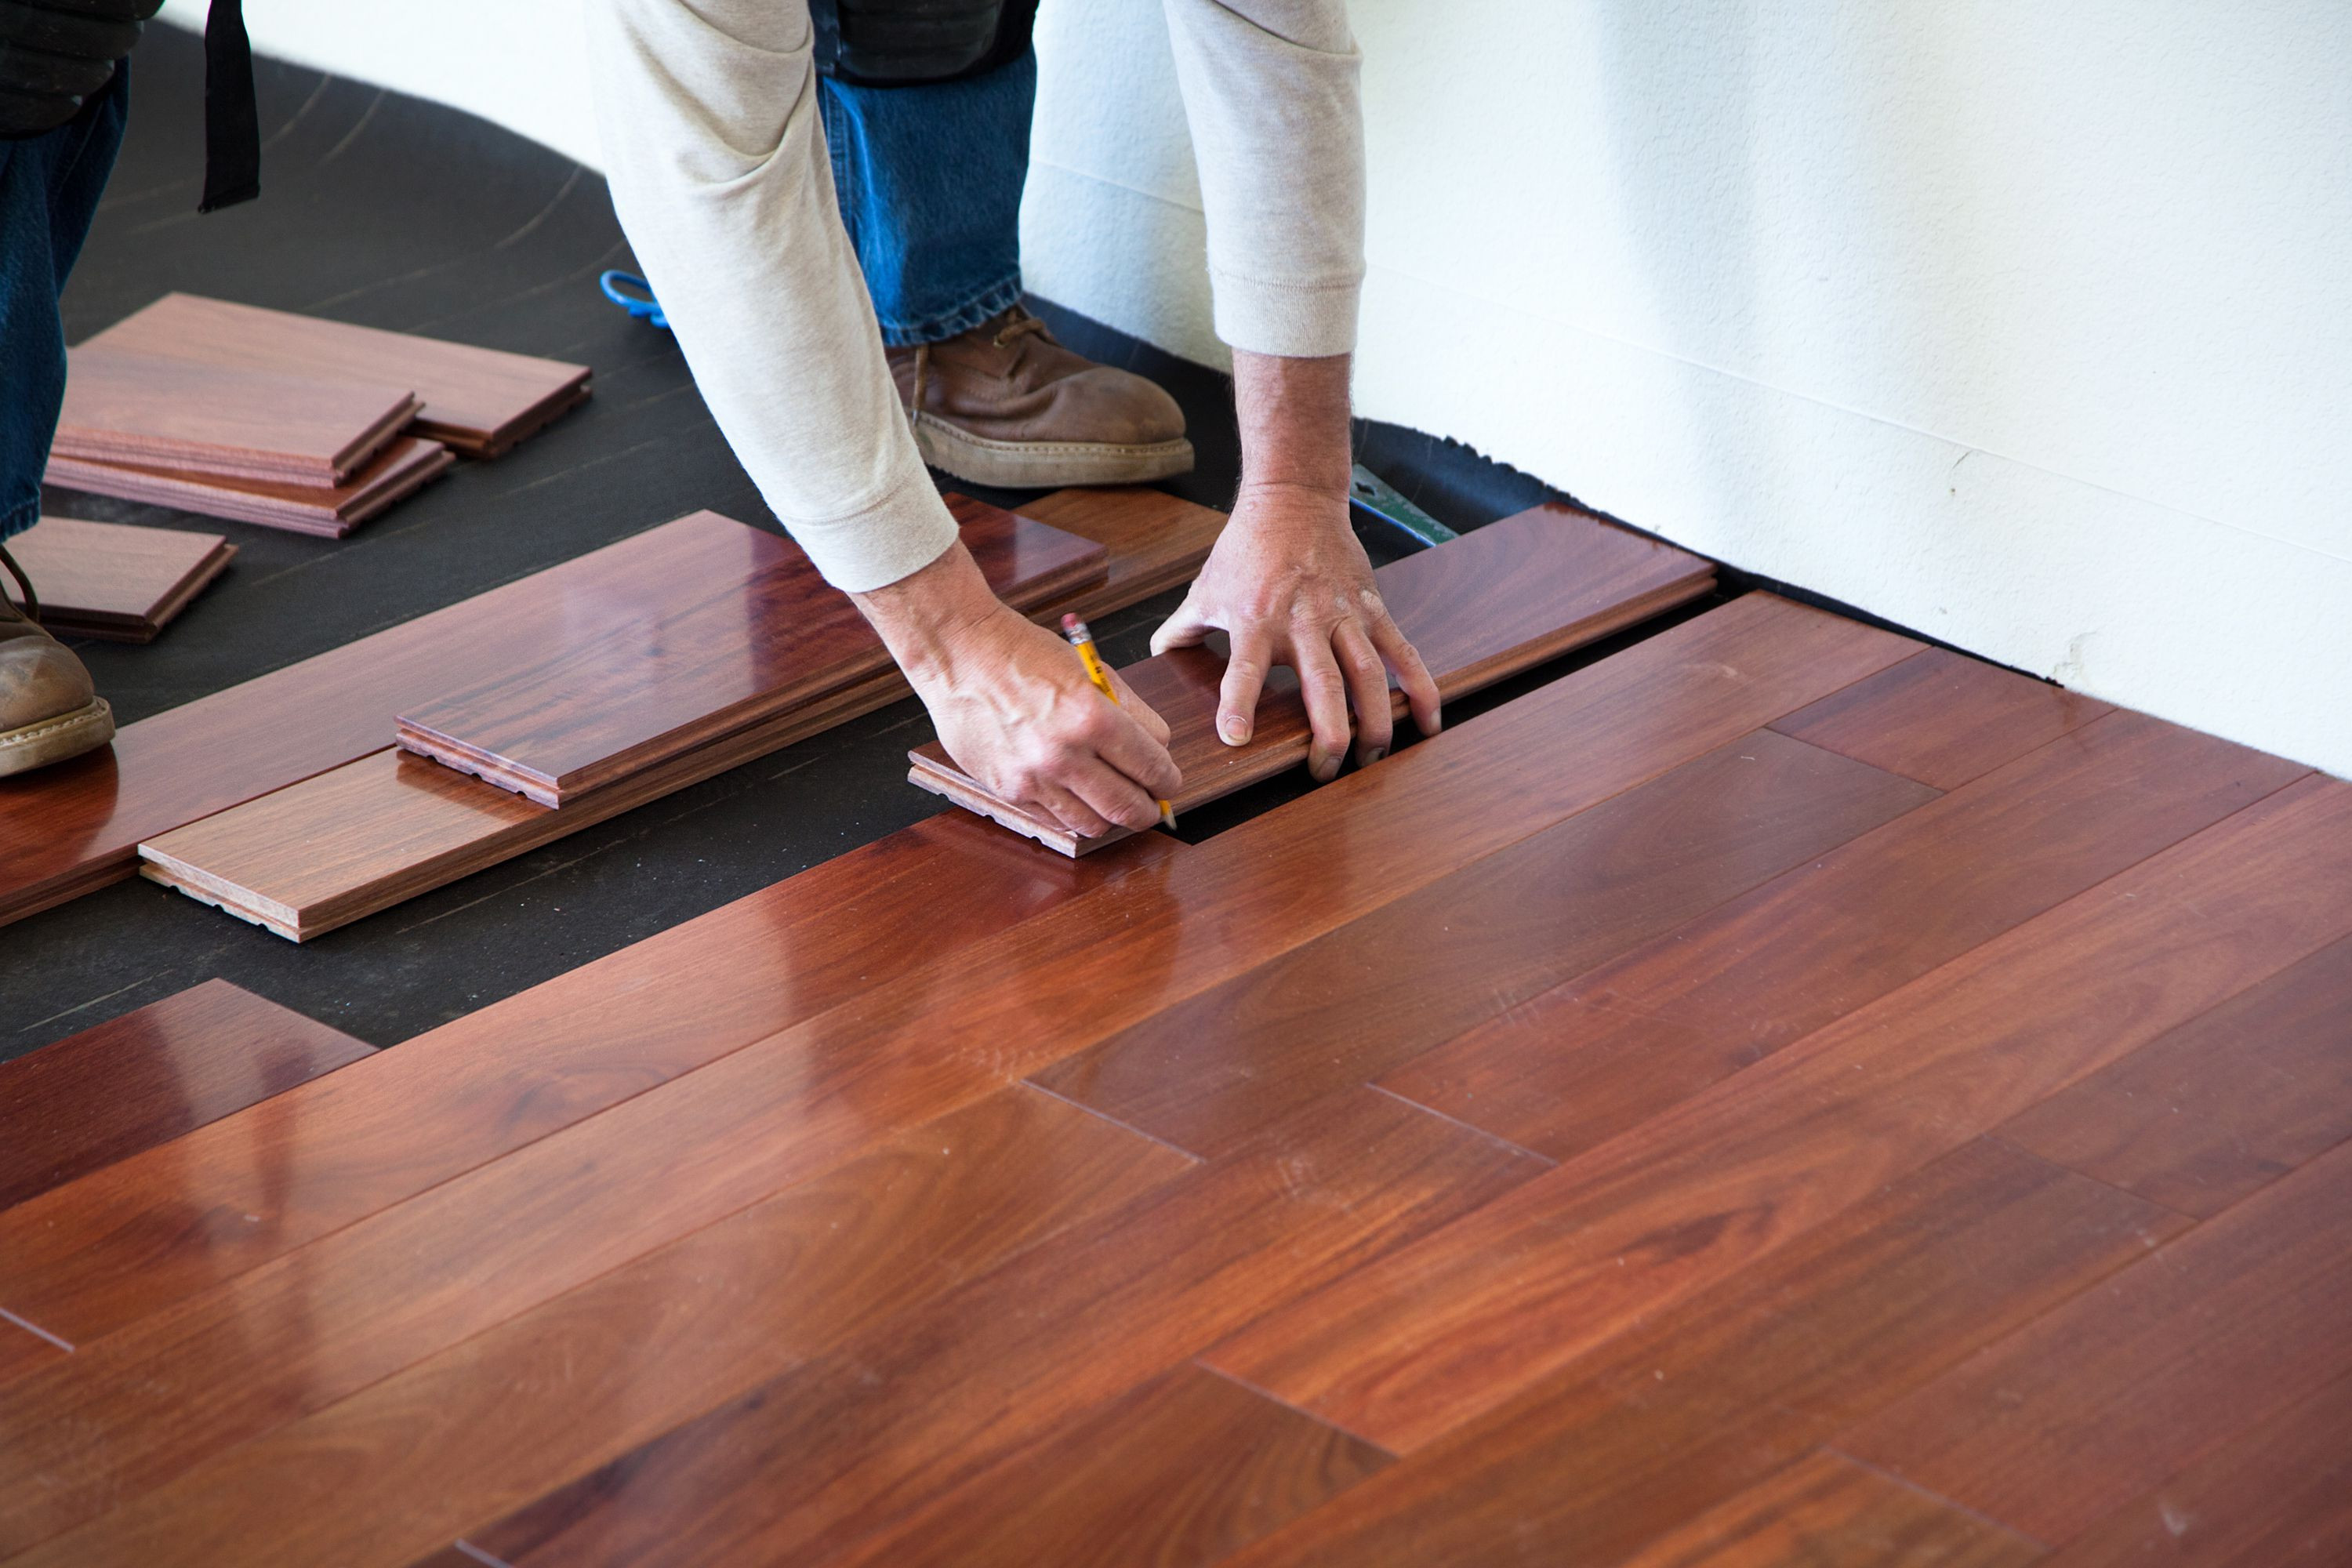 17 Fantastic Laying Hardwood Floors 2021 free download laying hardwood floors of how to install a hardwood floor the subfloor is the foundation of a in how to install a hardwood floor the subfloor is the foundation of a good floor